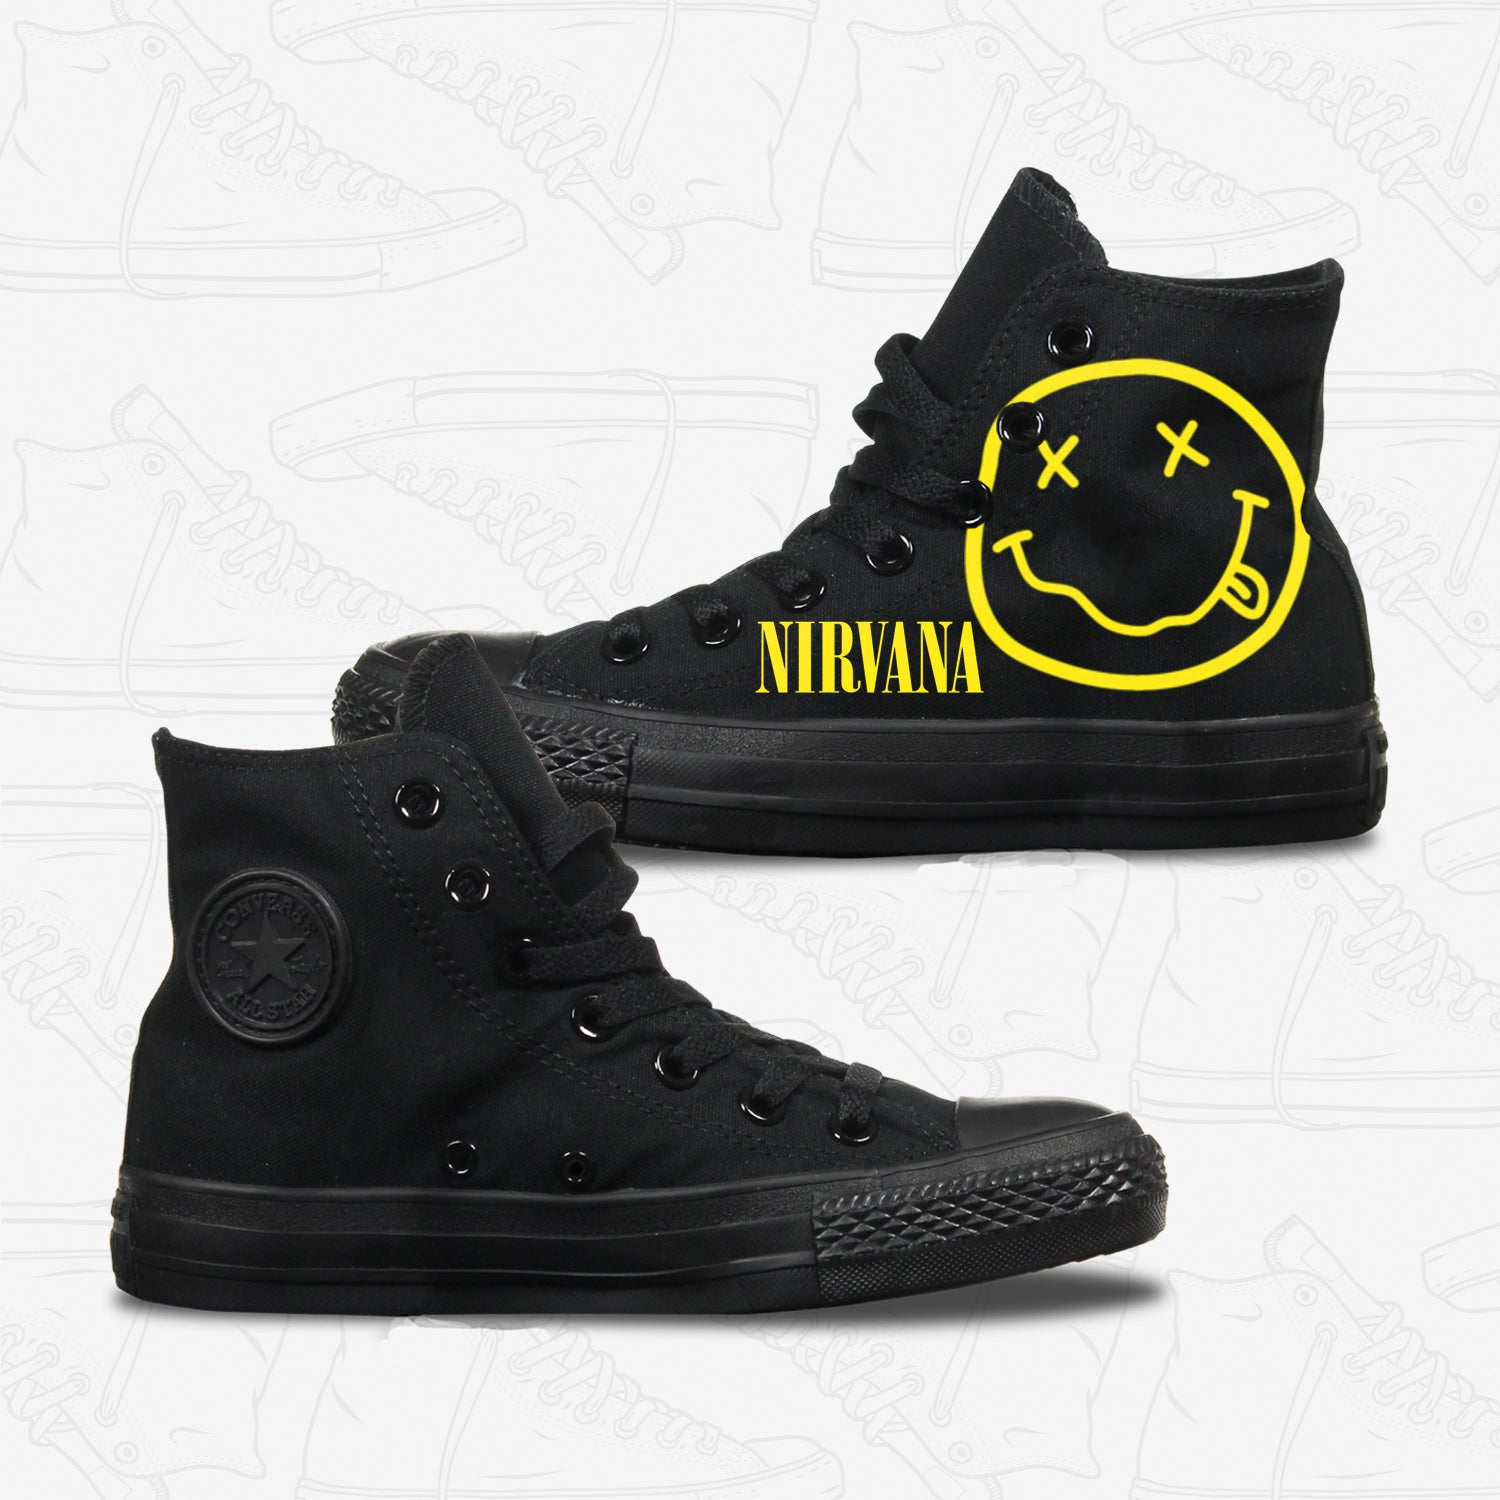 Nirvana Adult Converse Shoes